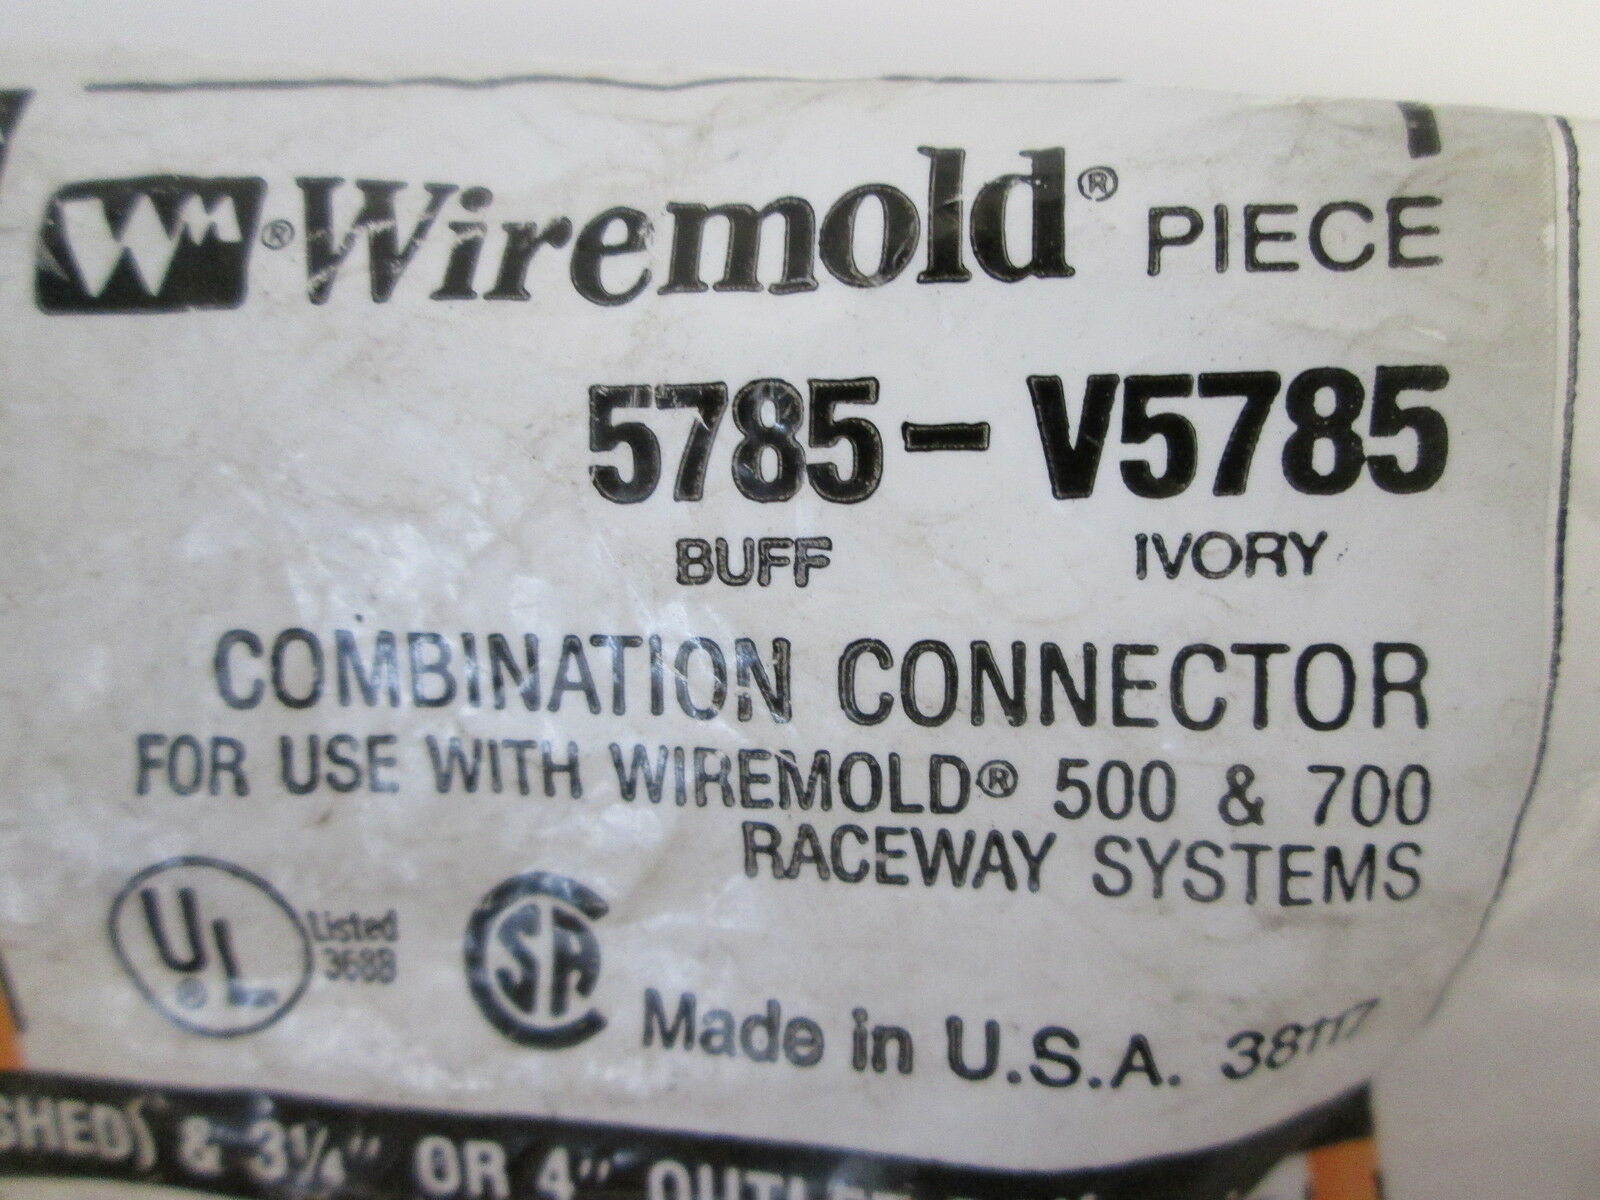 Awesome Wiremold 500 Parts Composition - Wiring Diagram Ideas ...